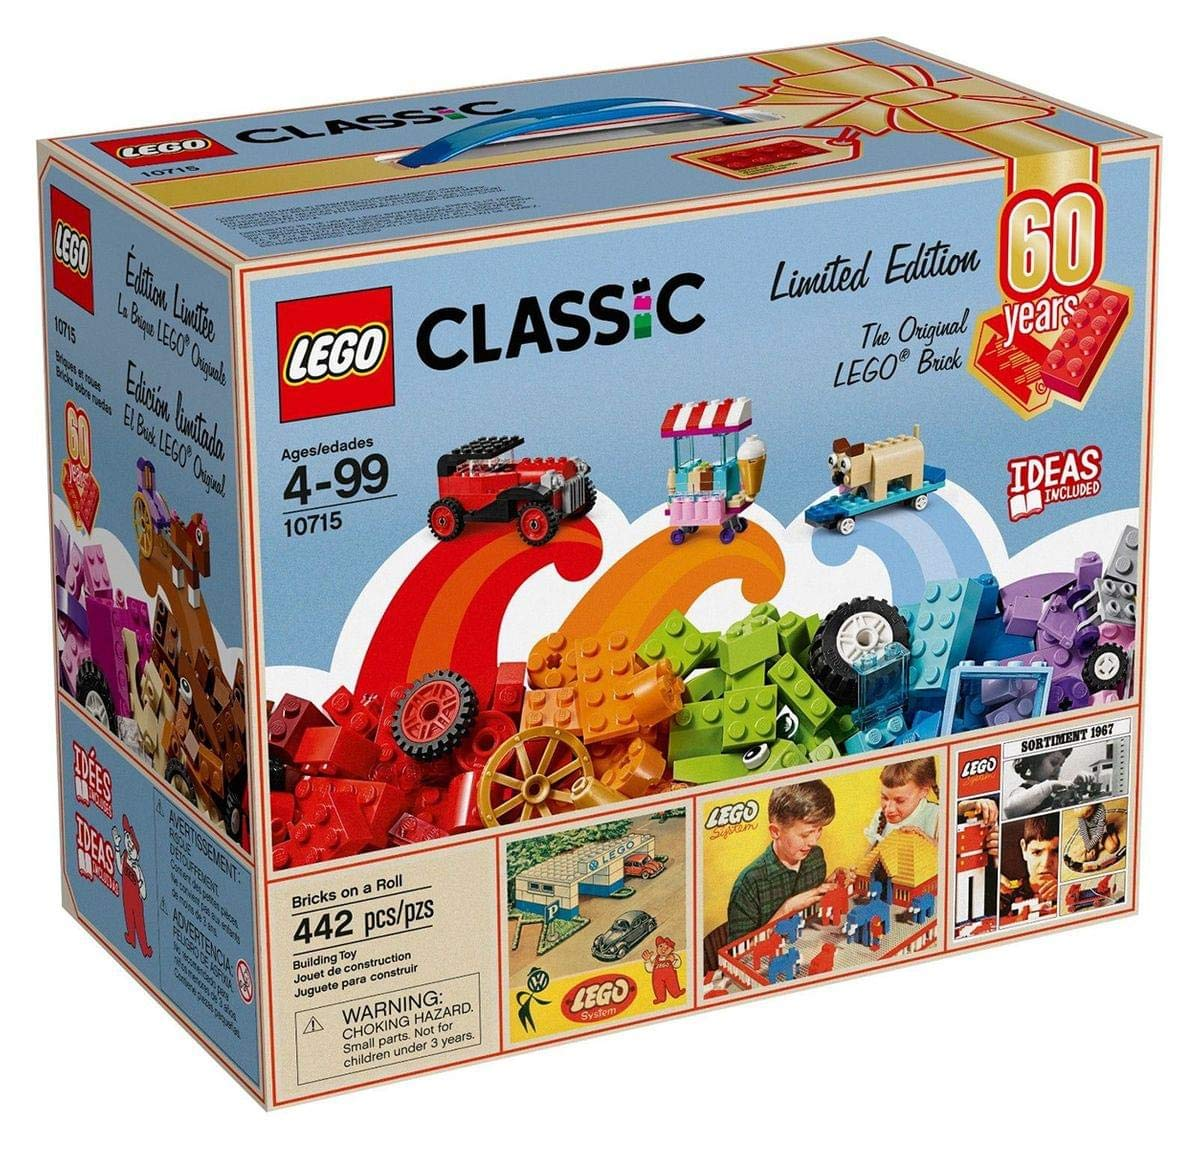 Limited Roll Pieces 442 10715 60th Classic Bricks Lego Anniversary Edition Exclusive A On POkiuTZX